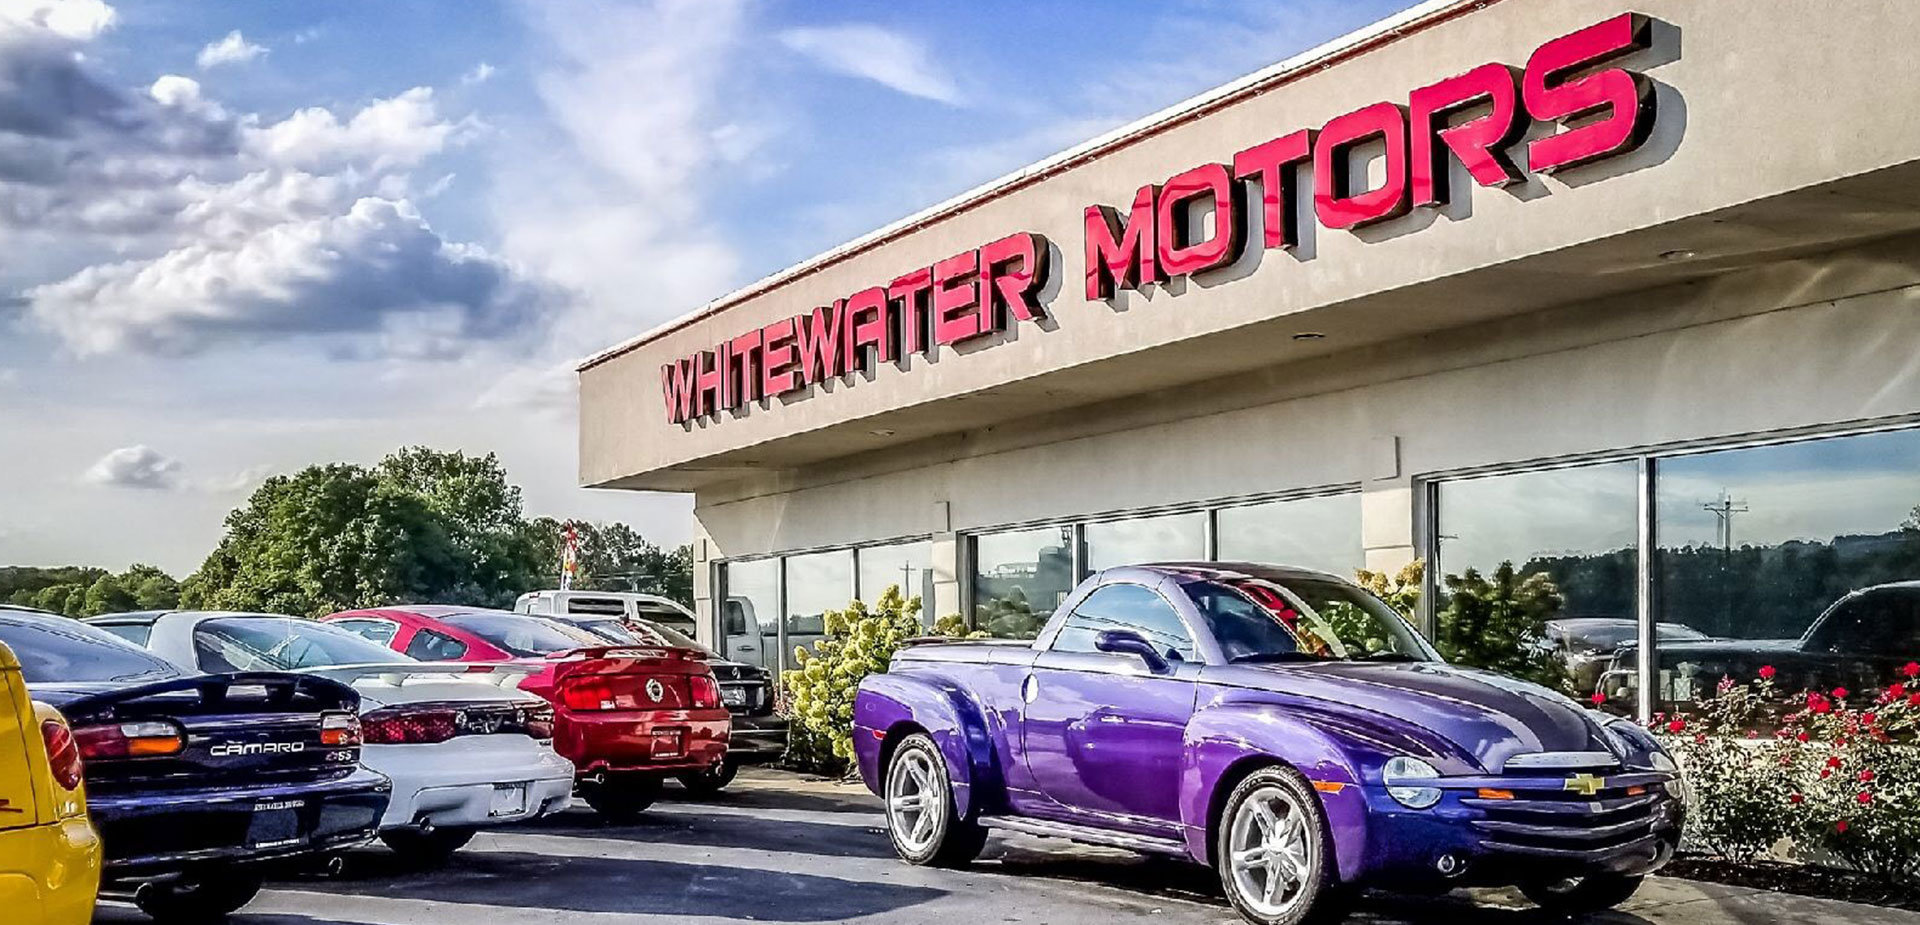 Whitewater motors inc the most trusted name in the car for Whitewater motors inc west harrison in